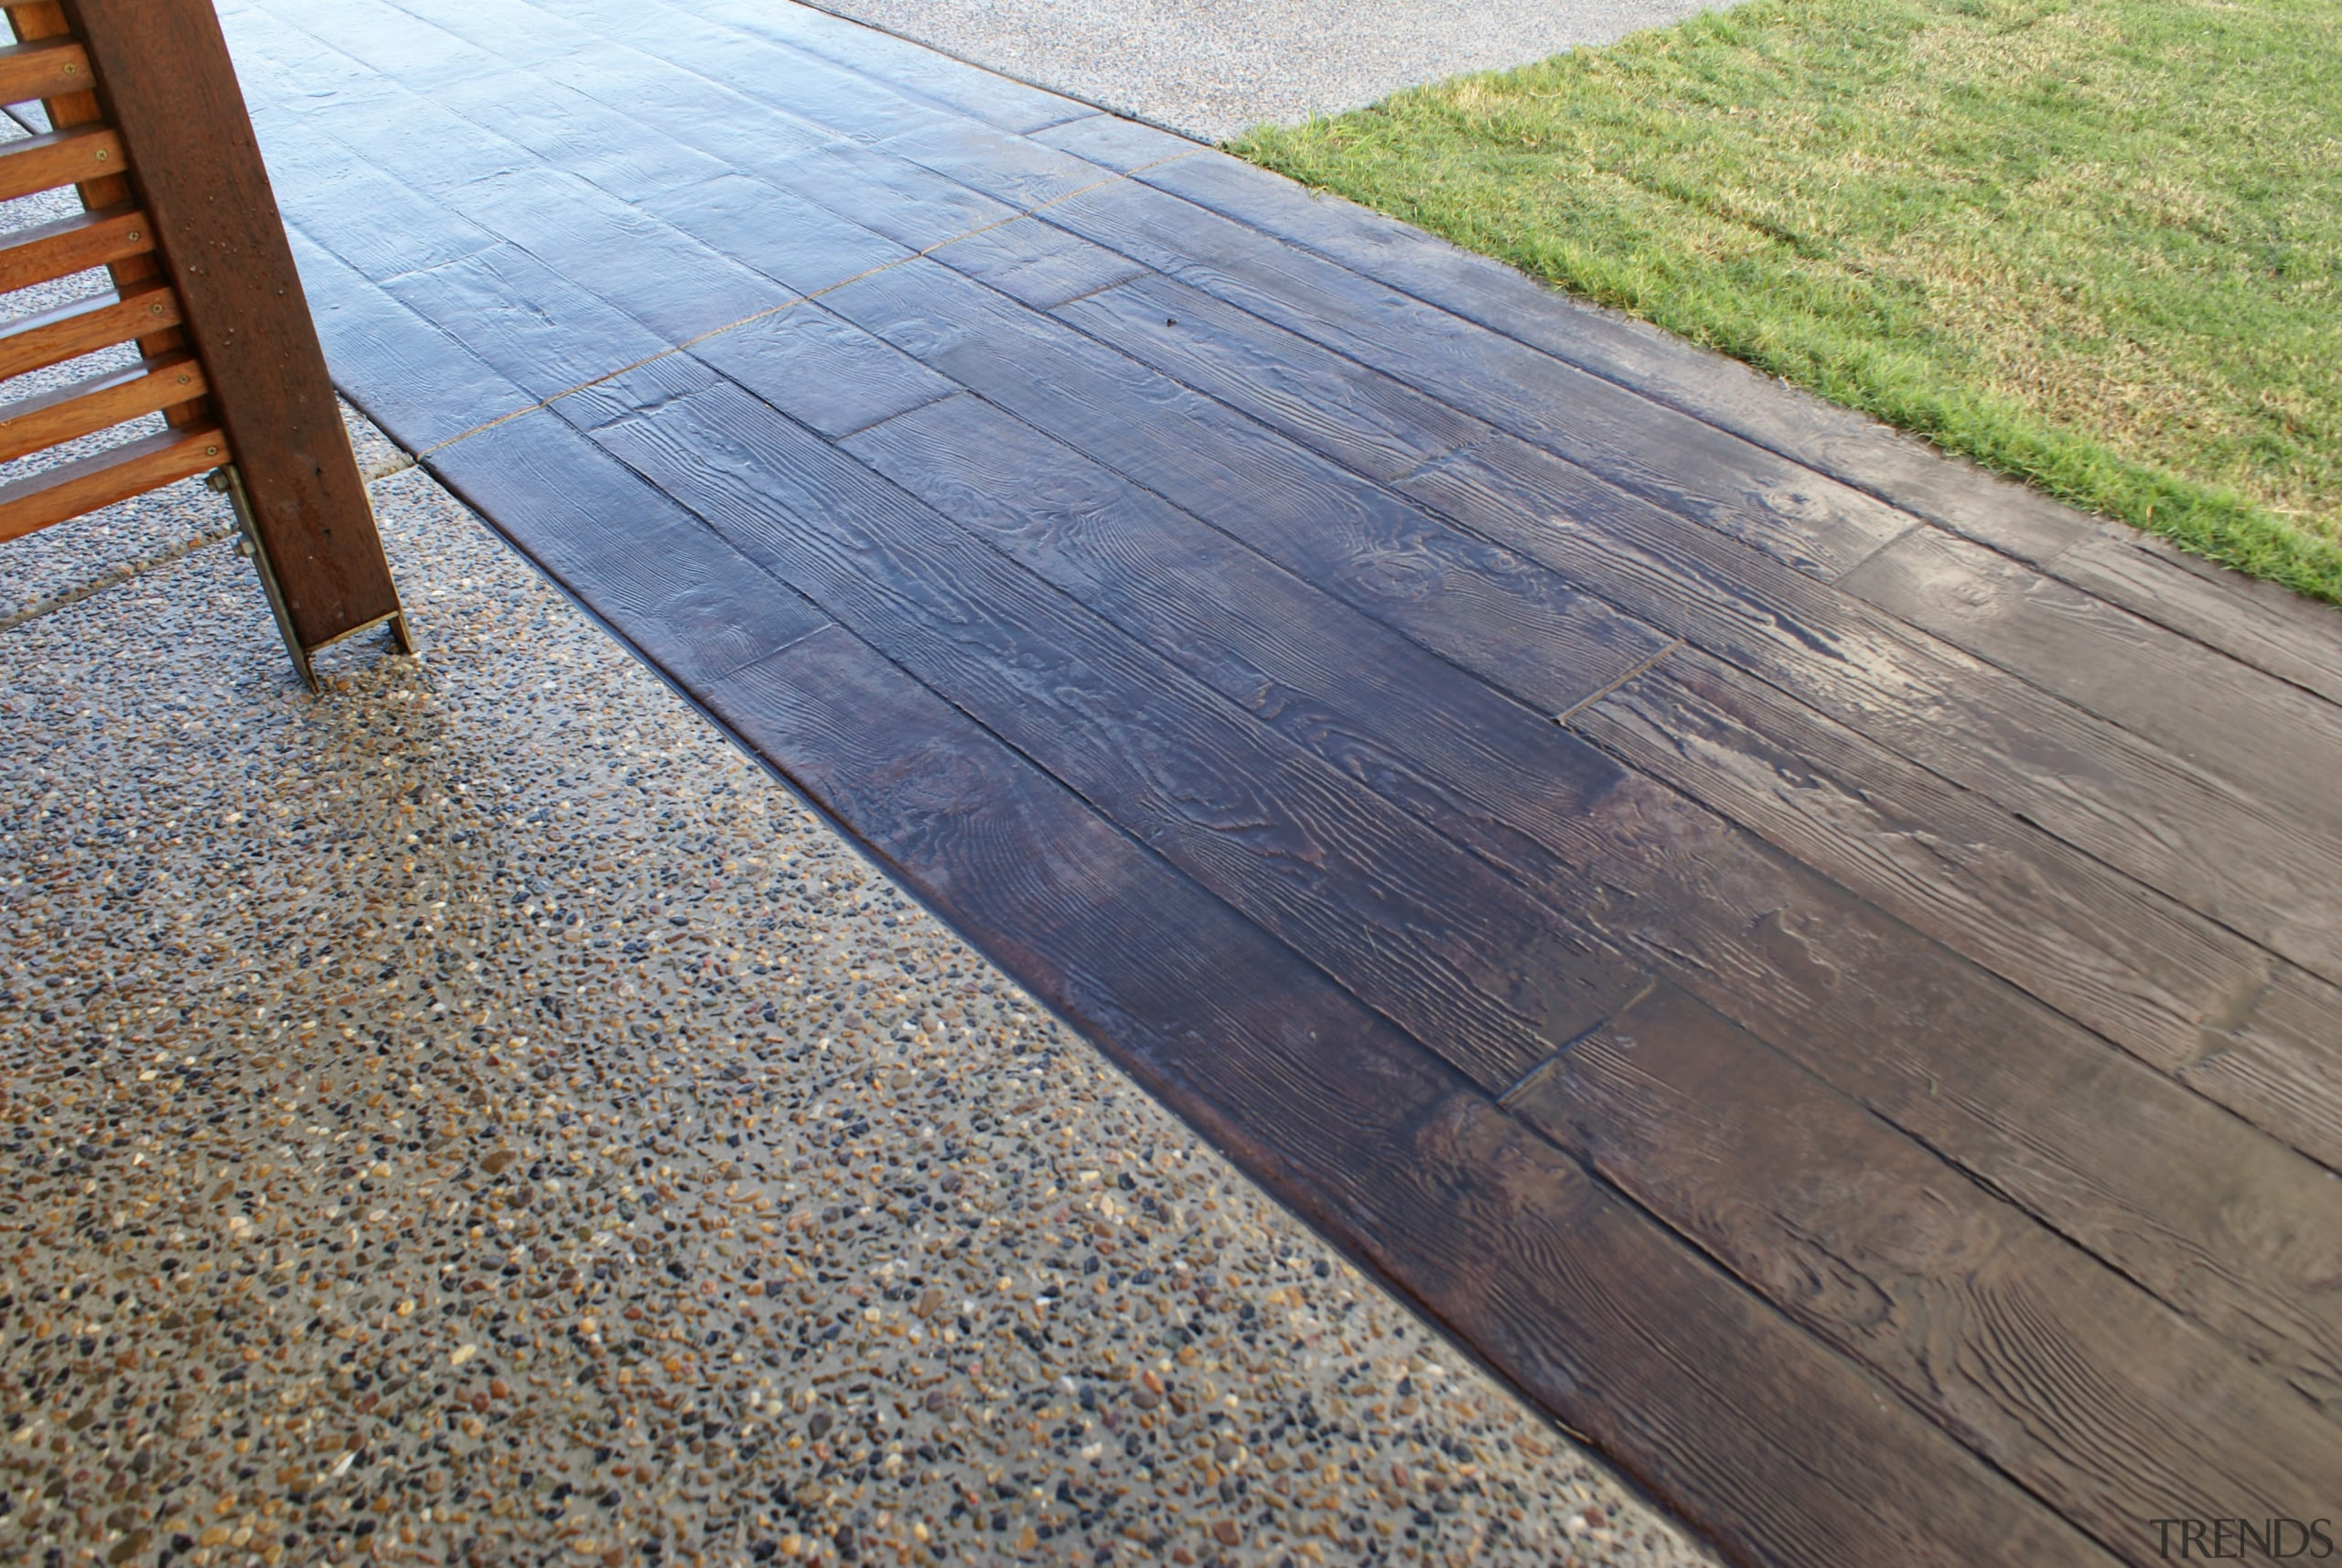 Wood boards? No, this is a concrete surface deck, floor, flooring, hardwood, line, road surface, walkway, wood, wood stain, gray